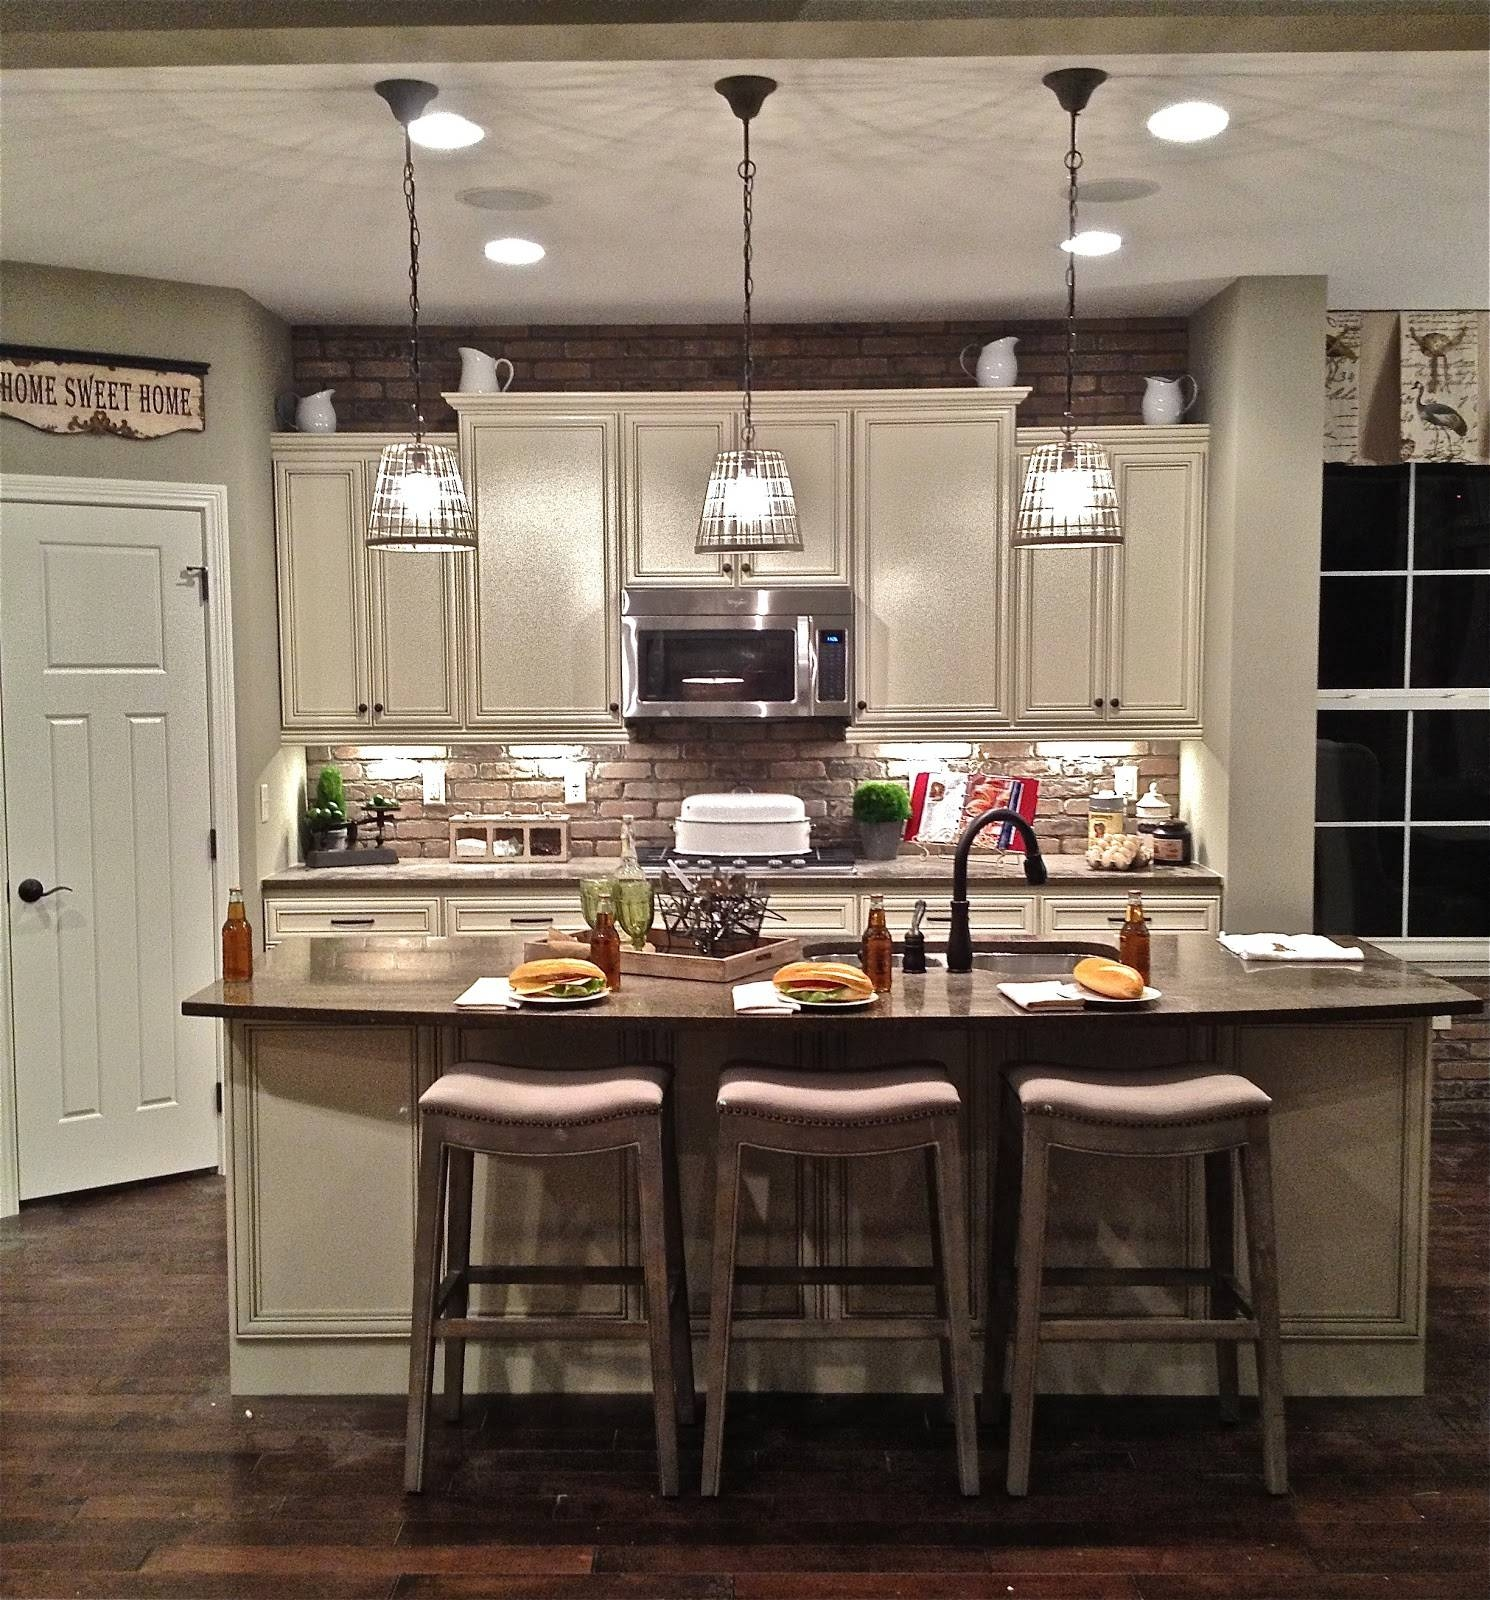 Trend Pendant Lighting Kitchen Island 88 For Your Clearance regarding Clearance Pendant Lighting (Image 15 of 15)